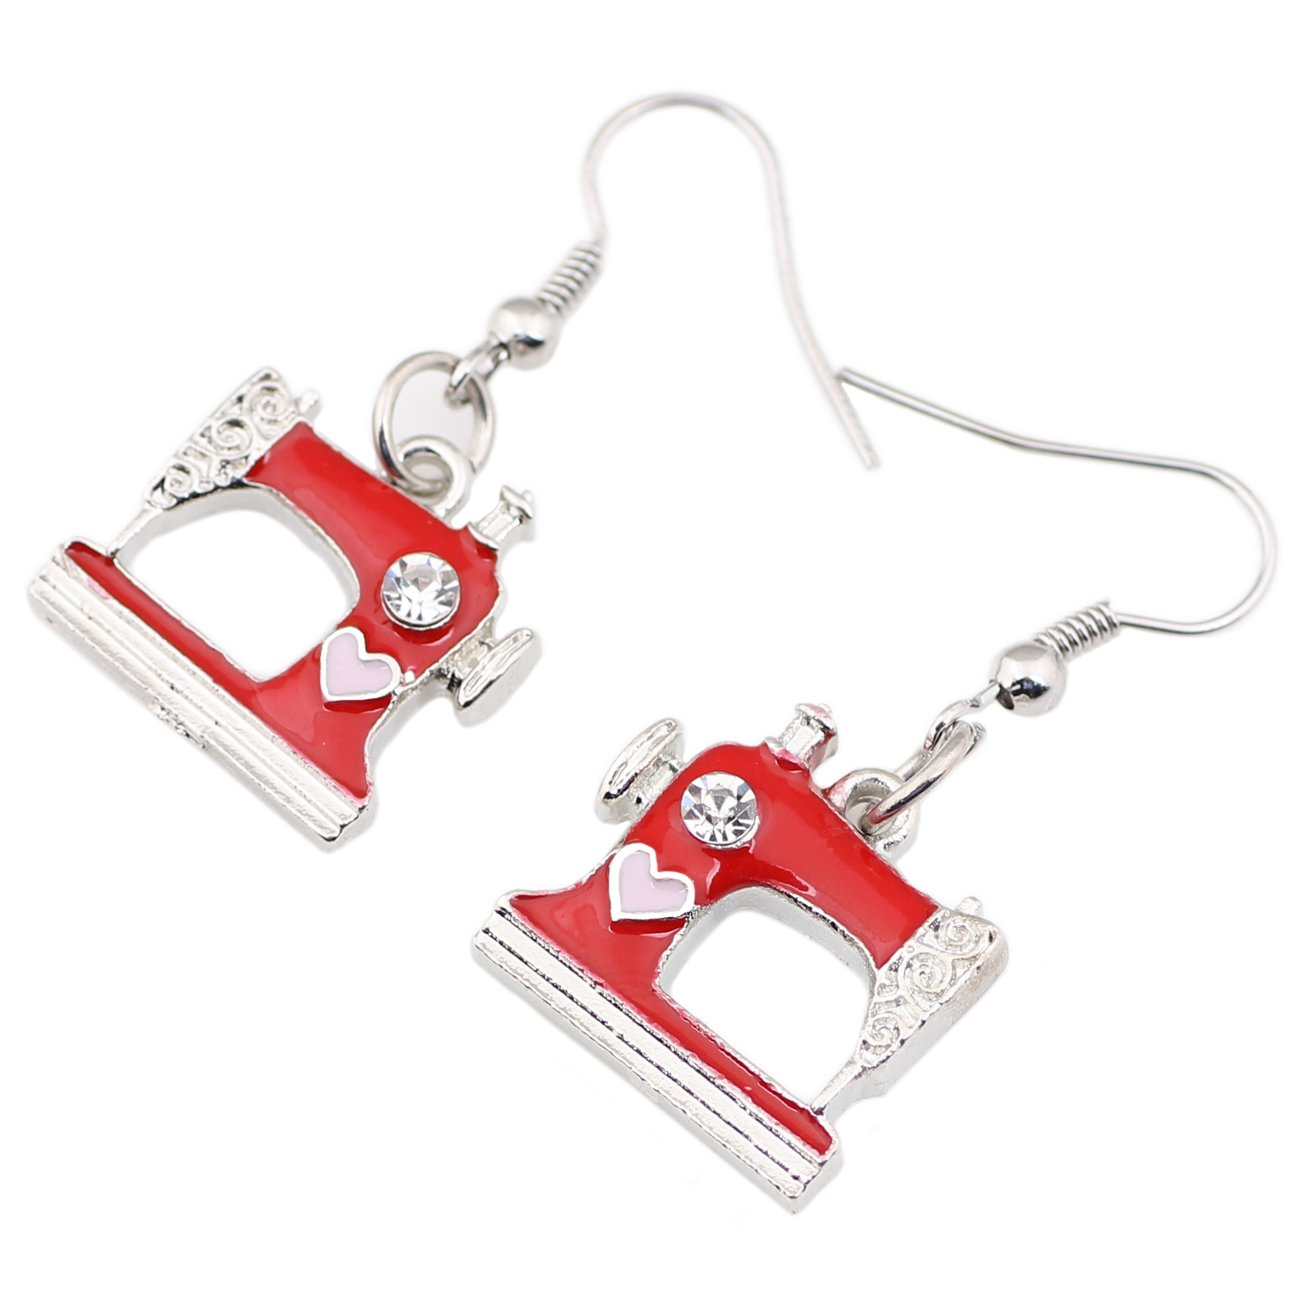 NEWEI Enamel Alloy Drop Dangle Cute Sewing Machine Earrings Fashion Tools Jewelry For Women Girls Gift Decoration Charms